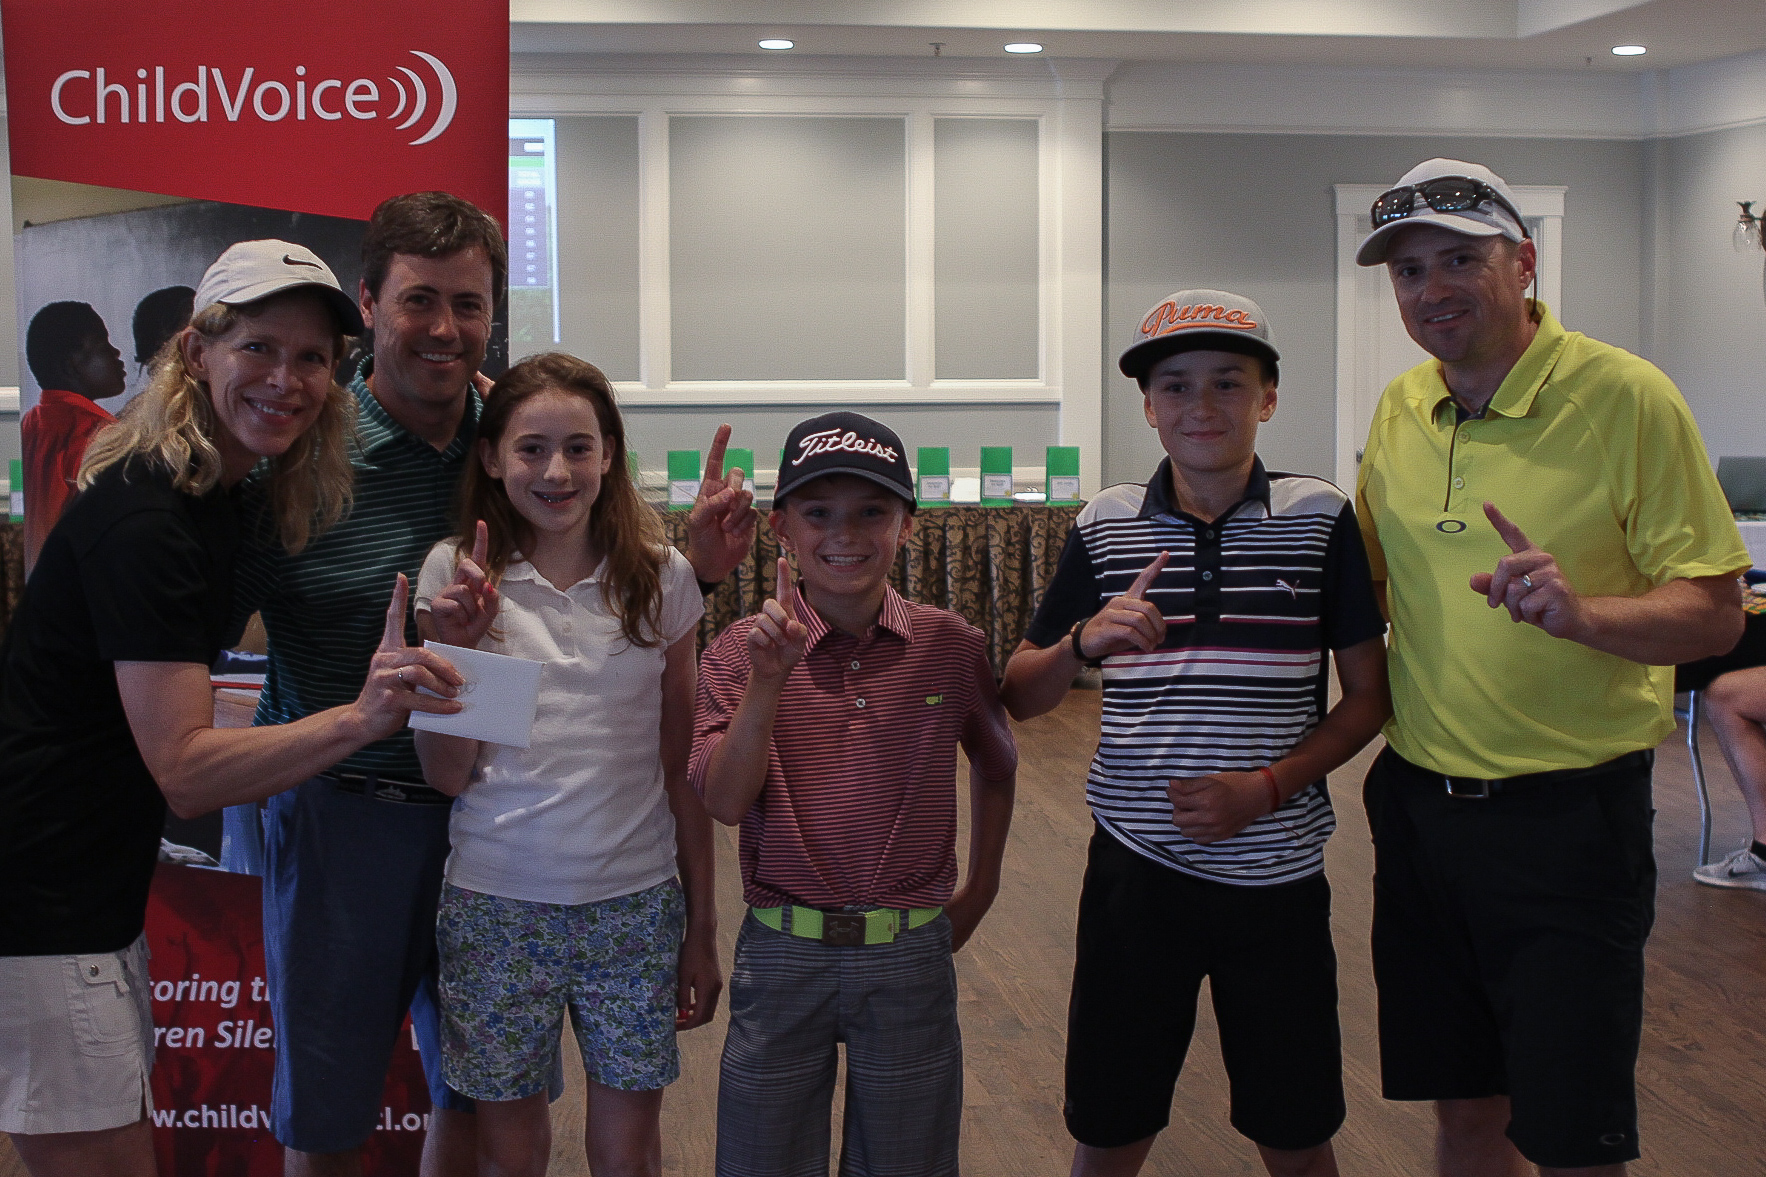 #23 Congratulations to our first place team, the O'Quinn family! Their team won a $400 gift certificate to The Oaks Pro Shop!